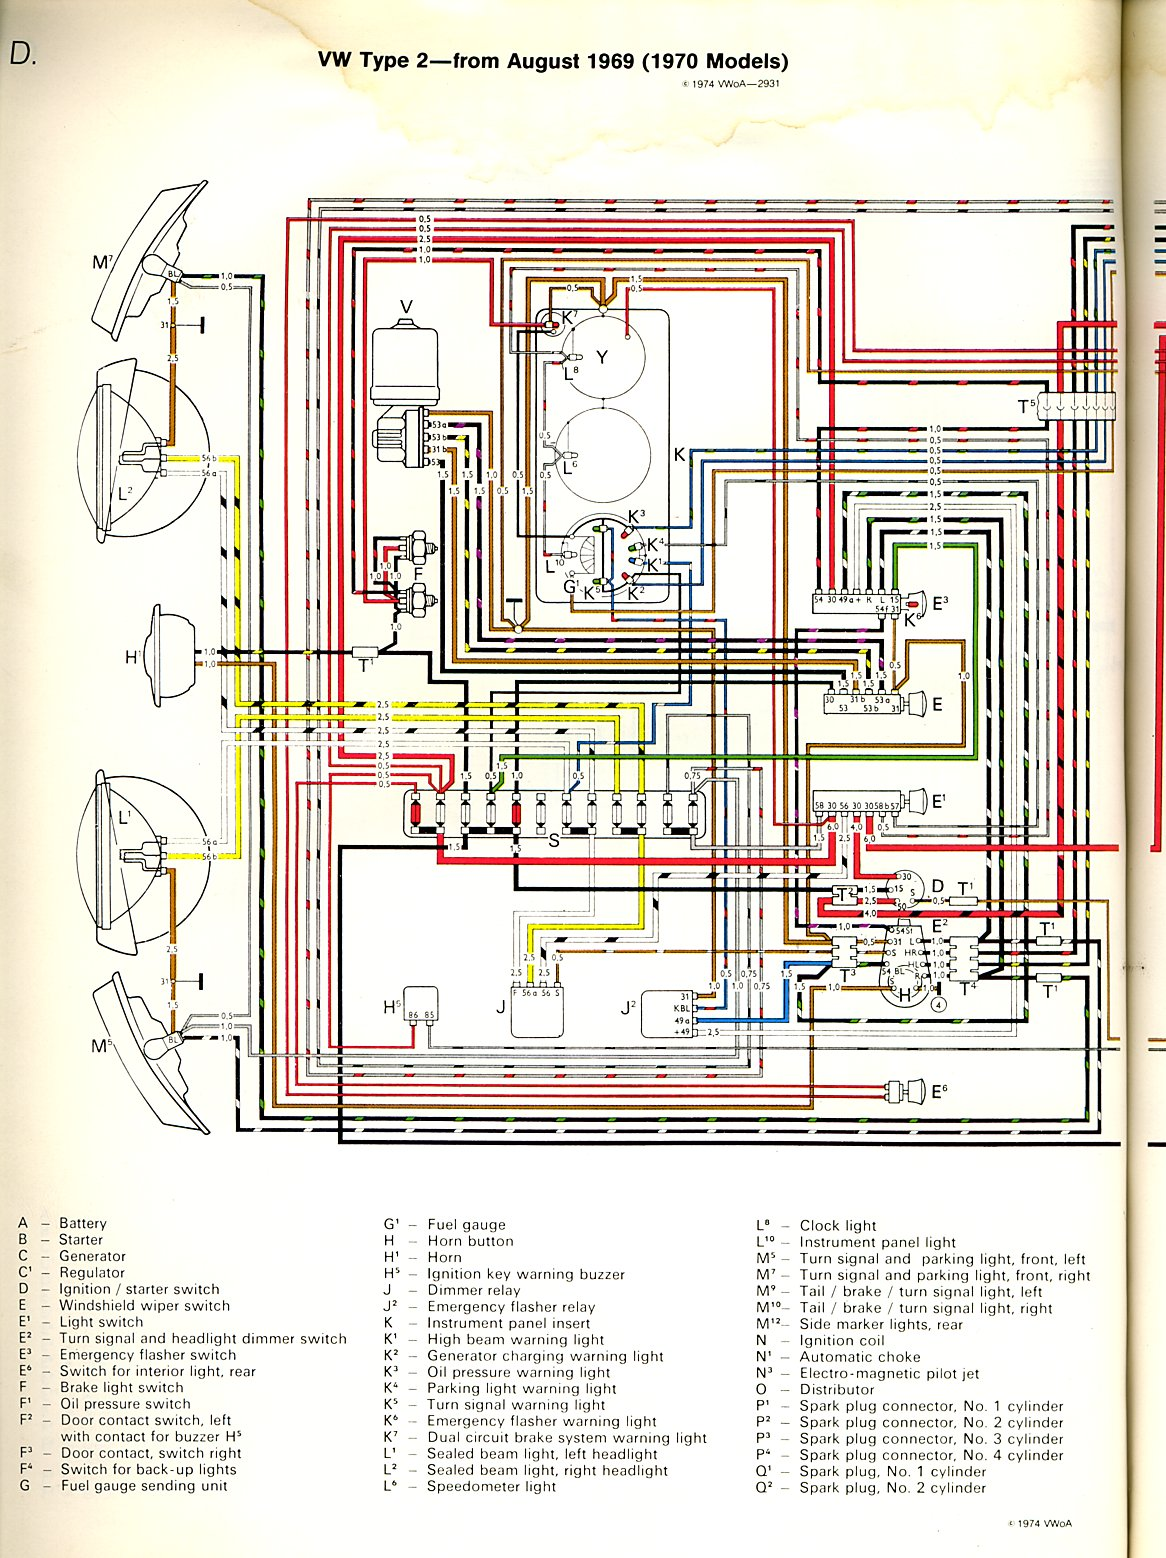 baybus_70a thesamba com type 2 wiring diagrams 2000 vw beetle headlight wiring harness at soozxer.org